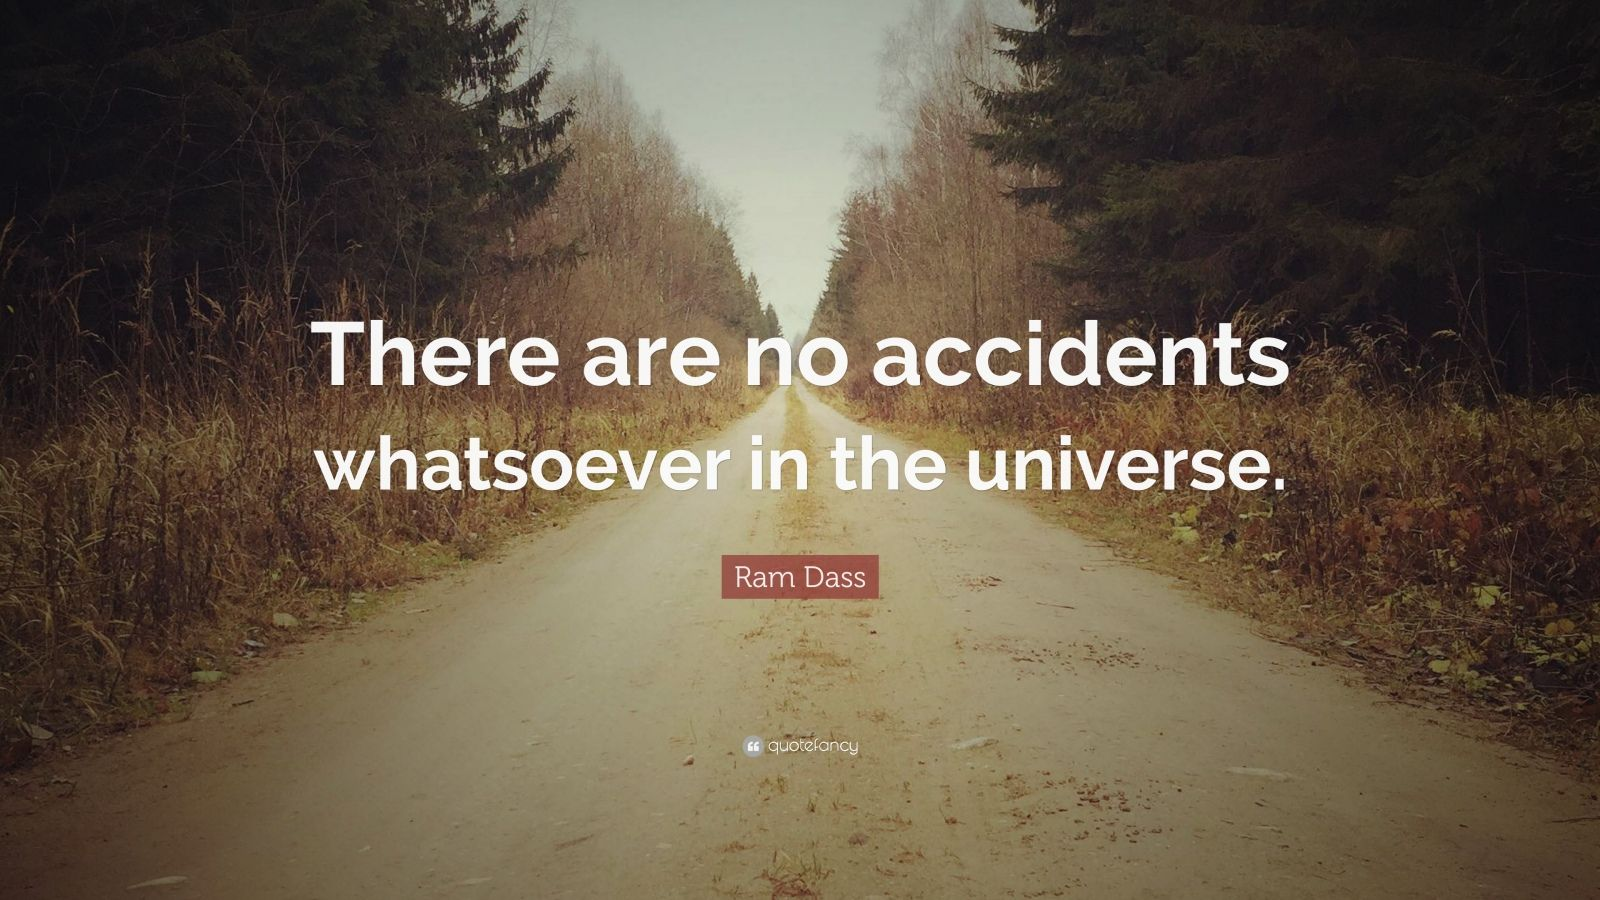 Wallpaper Of Yoga Quote Ram Dass Quote There Are No Accidents Whatsoever In The